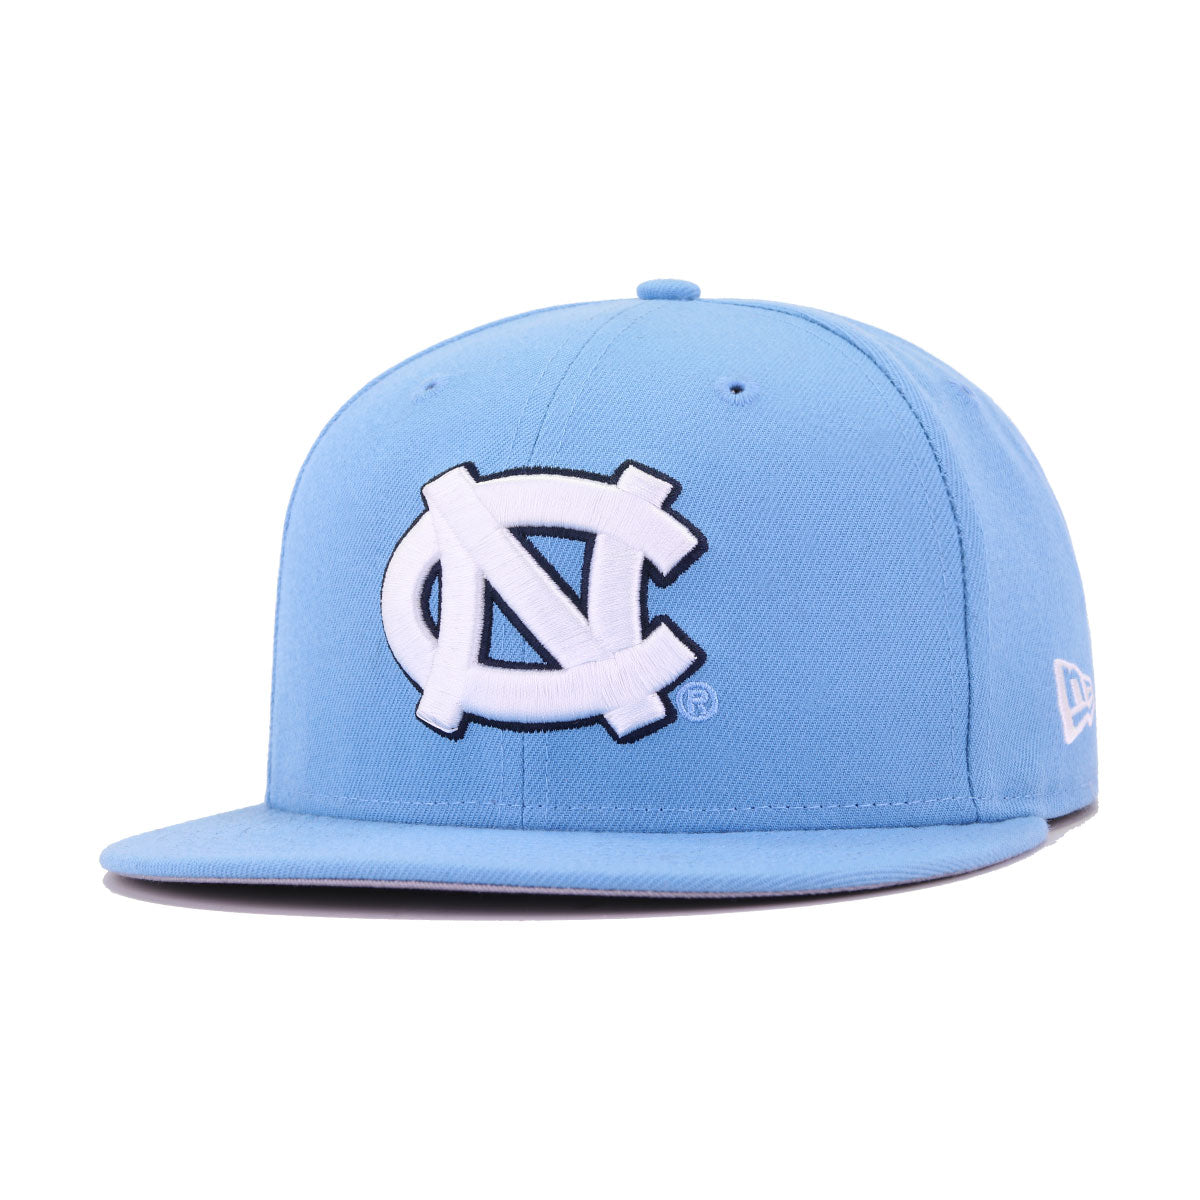 University of North Carolina Sky Blue New Era 9Fifty Snapback